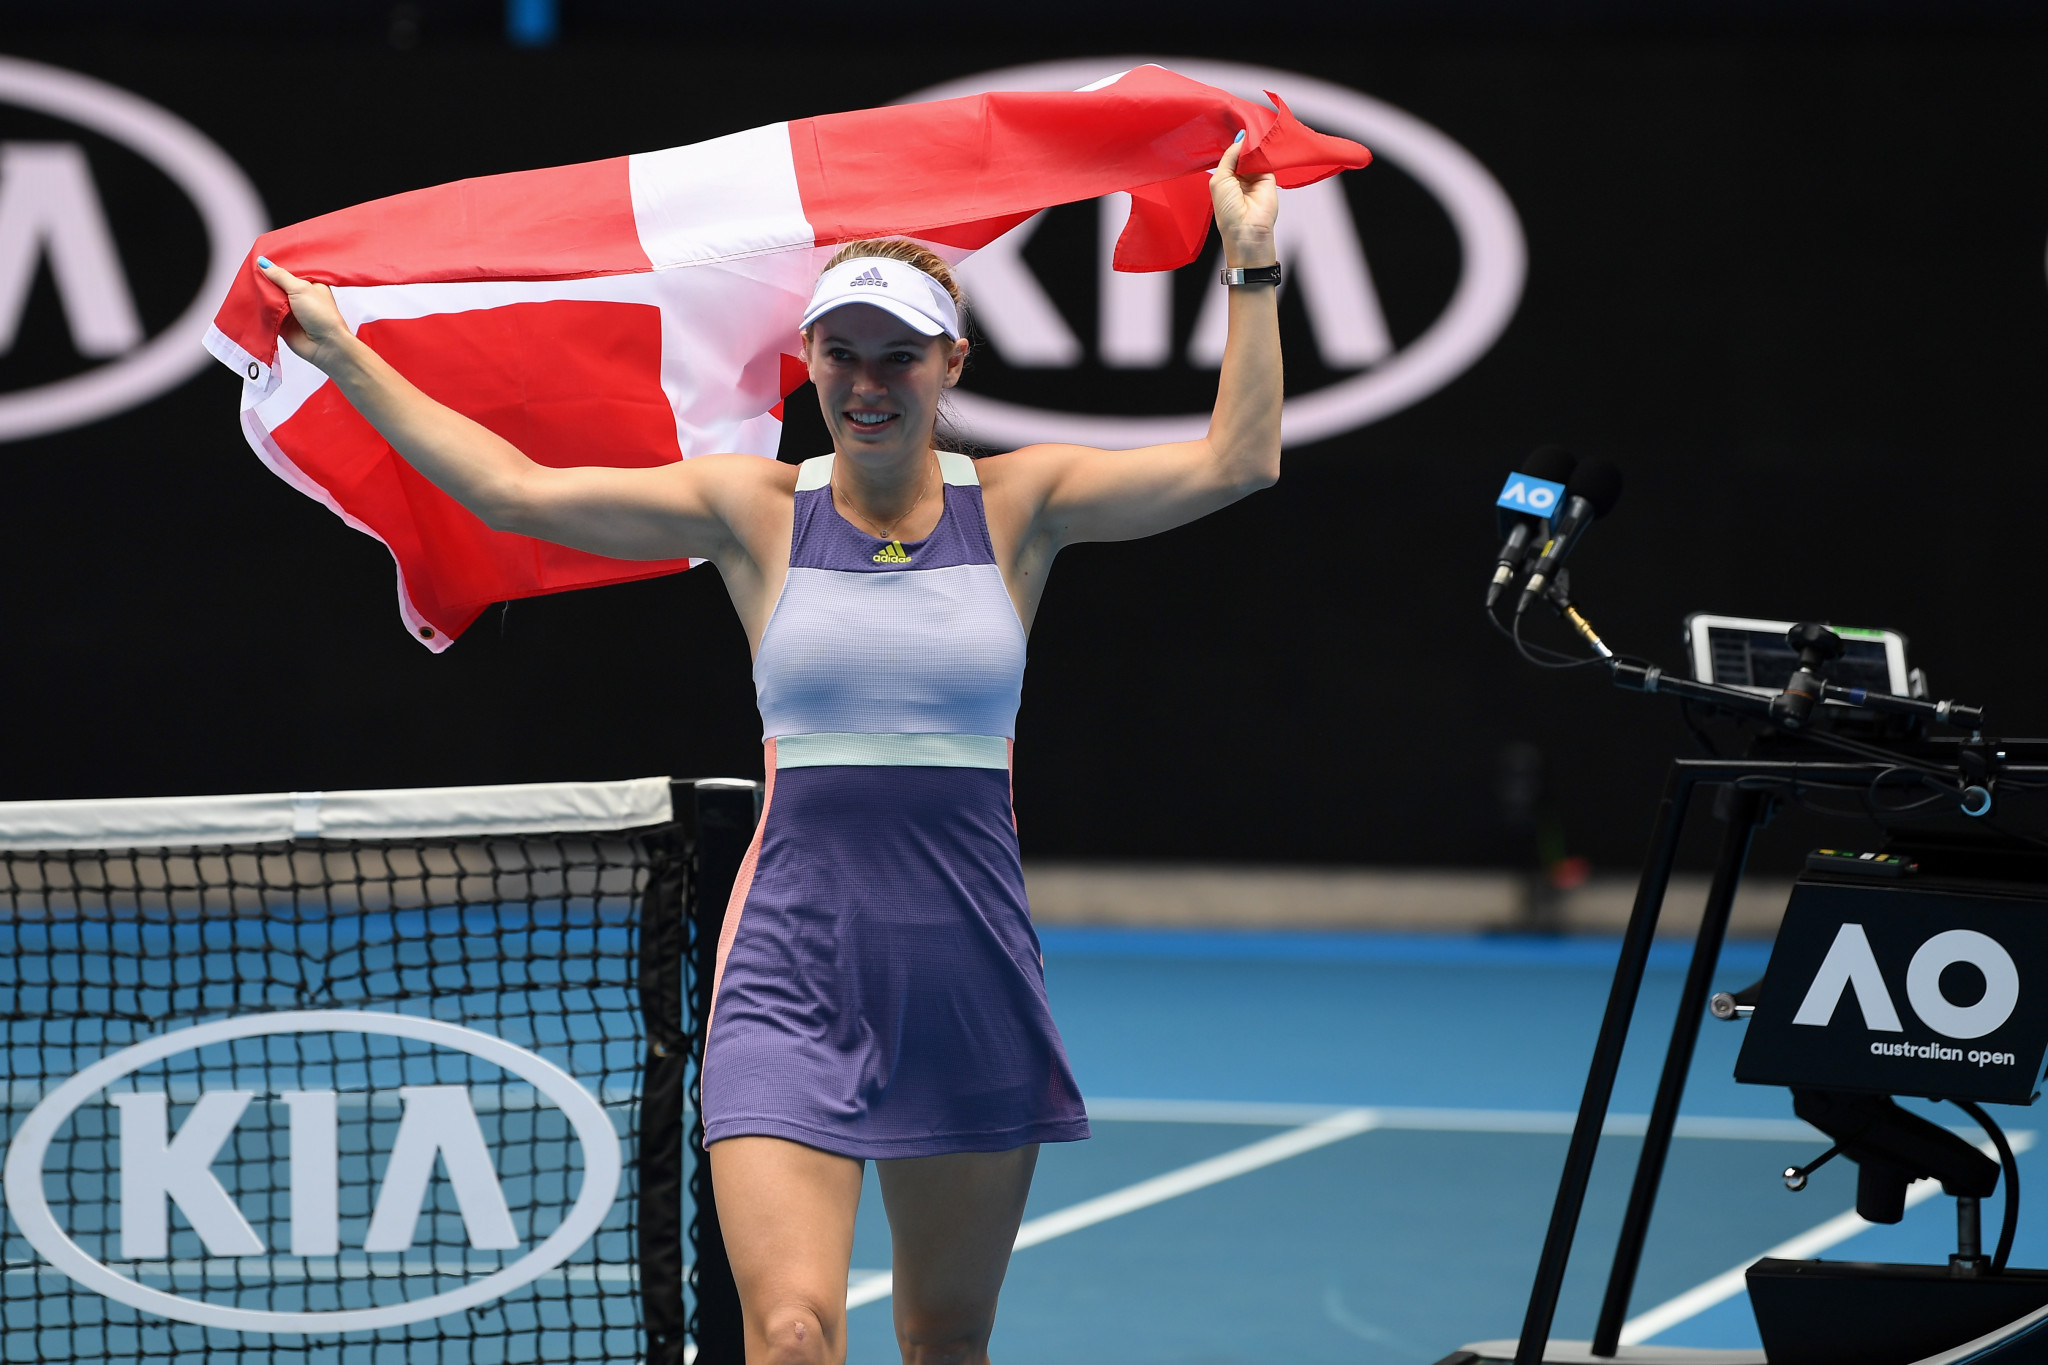 Caroline Wozniacki of Denmark played her last professional tennis match, losing 7-5, 3-6, 7-5 to Ons Jabeur of Tunisia ©Getty Images